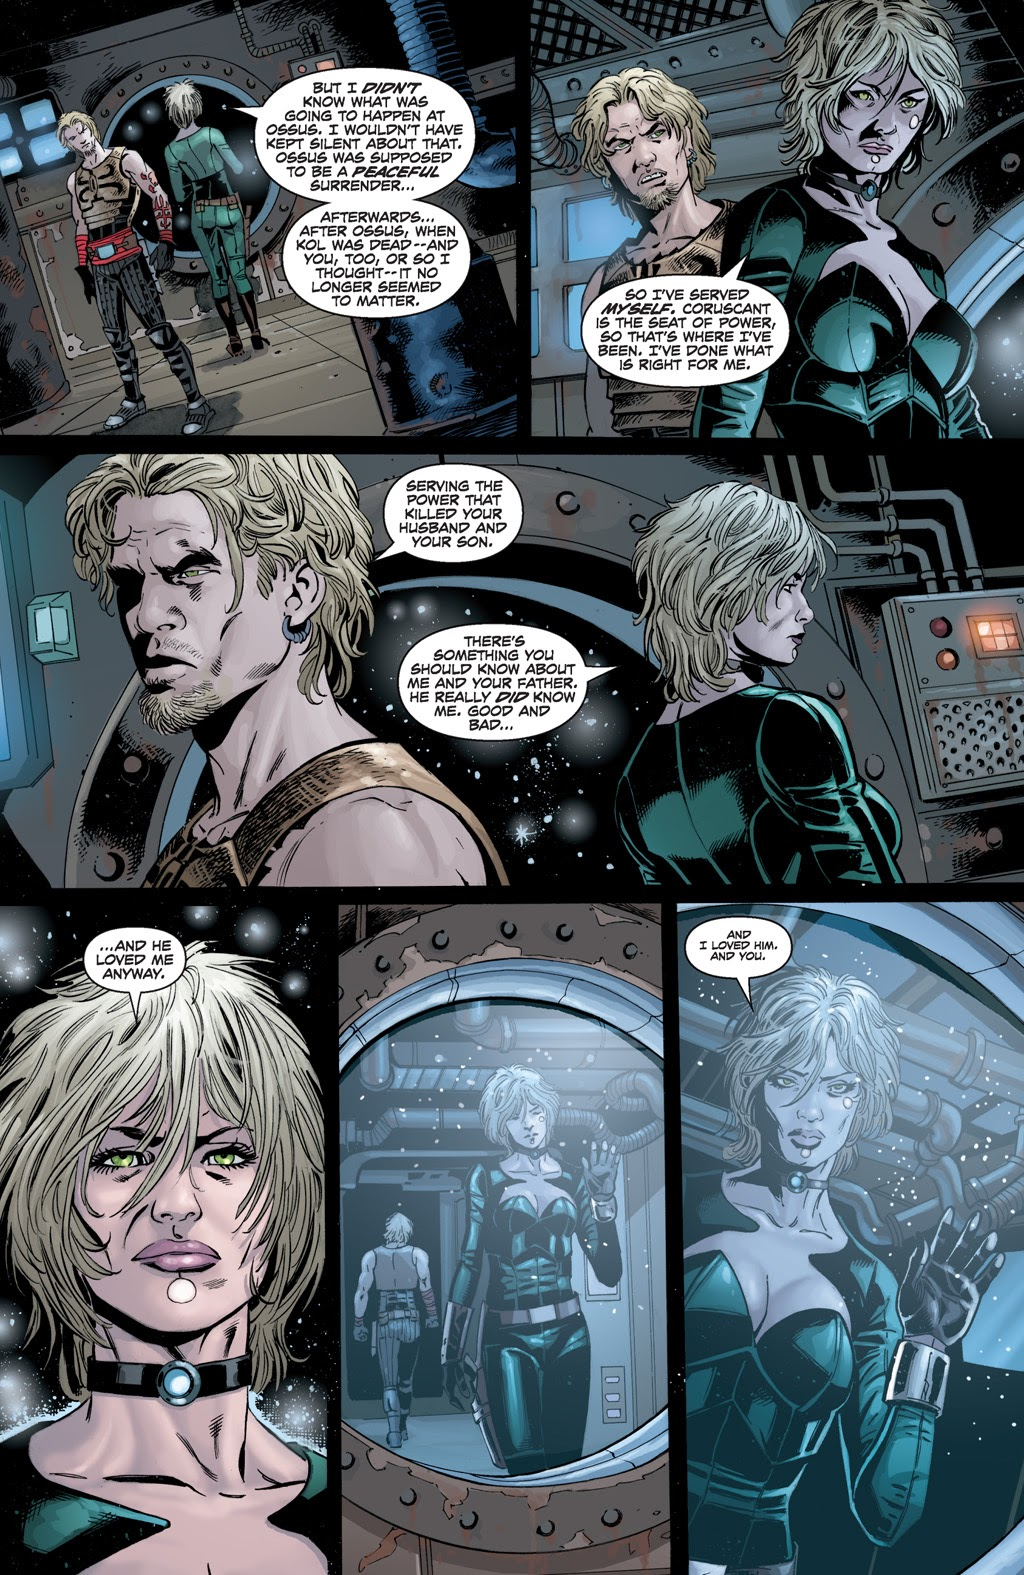 Cade Skywalker's Reunion With His Mother